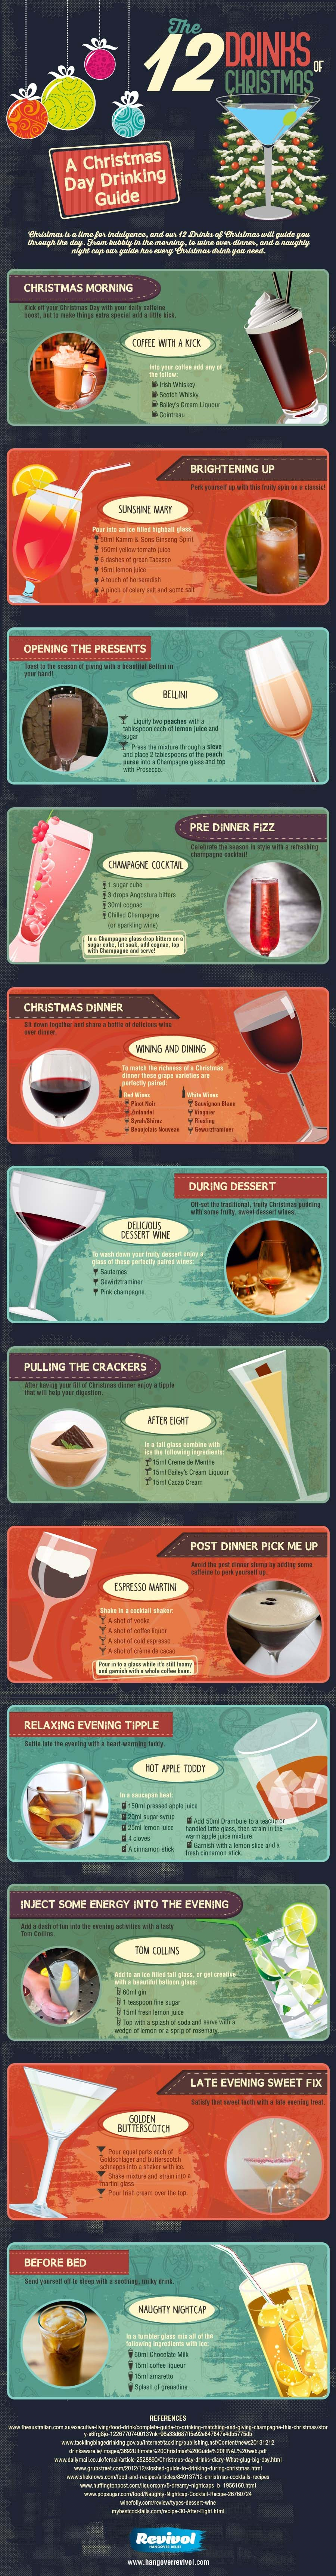 The 12 Drinks of Christmas – A holiday drinking guide